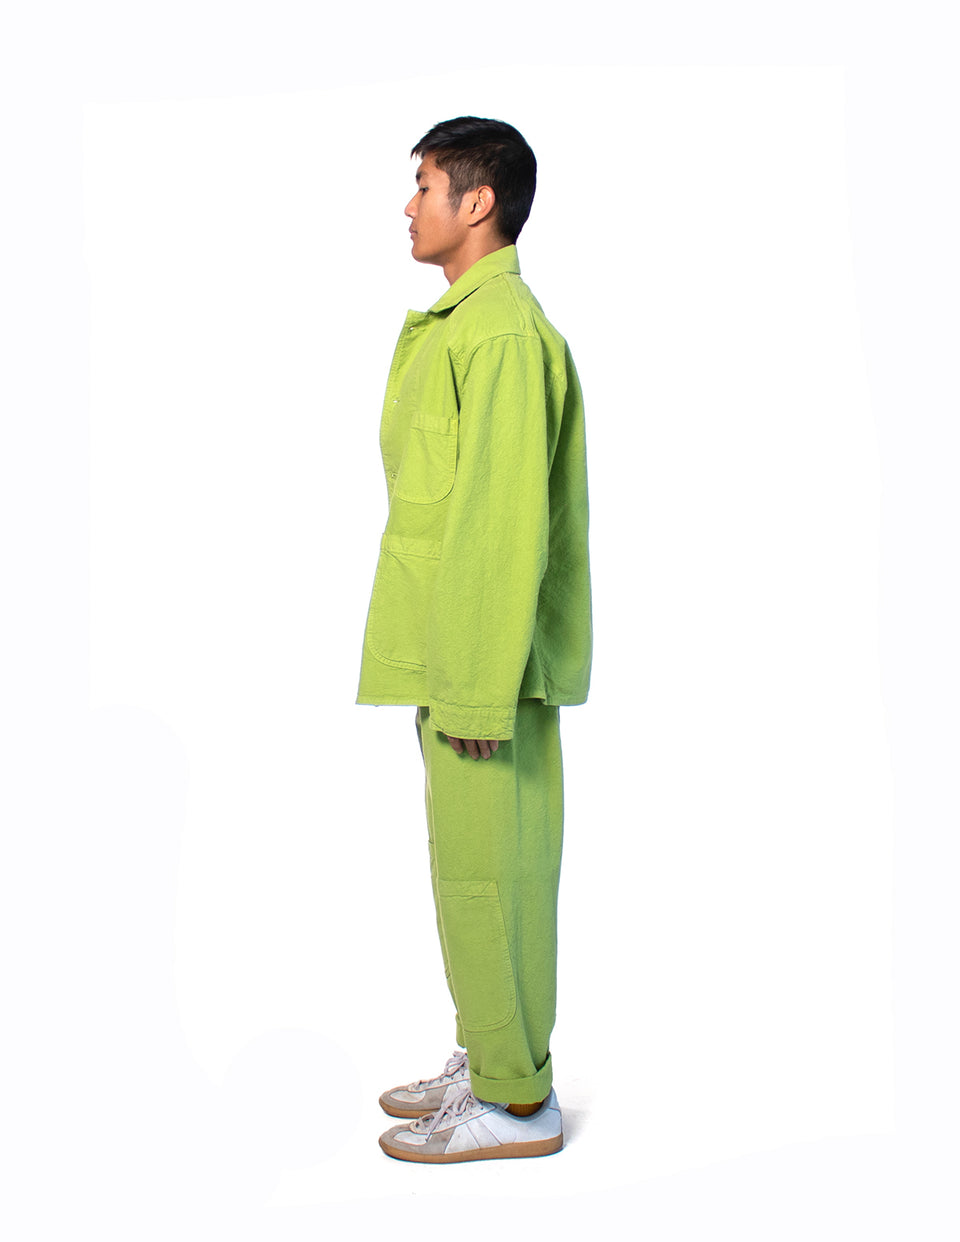 Avocado Jacket